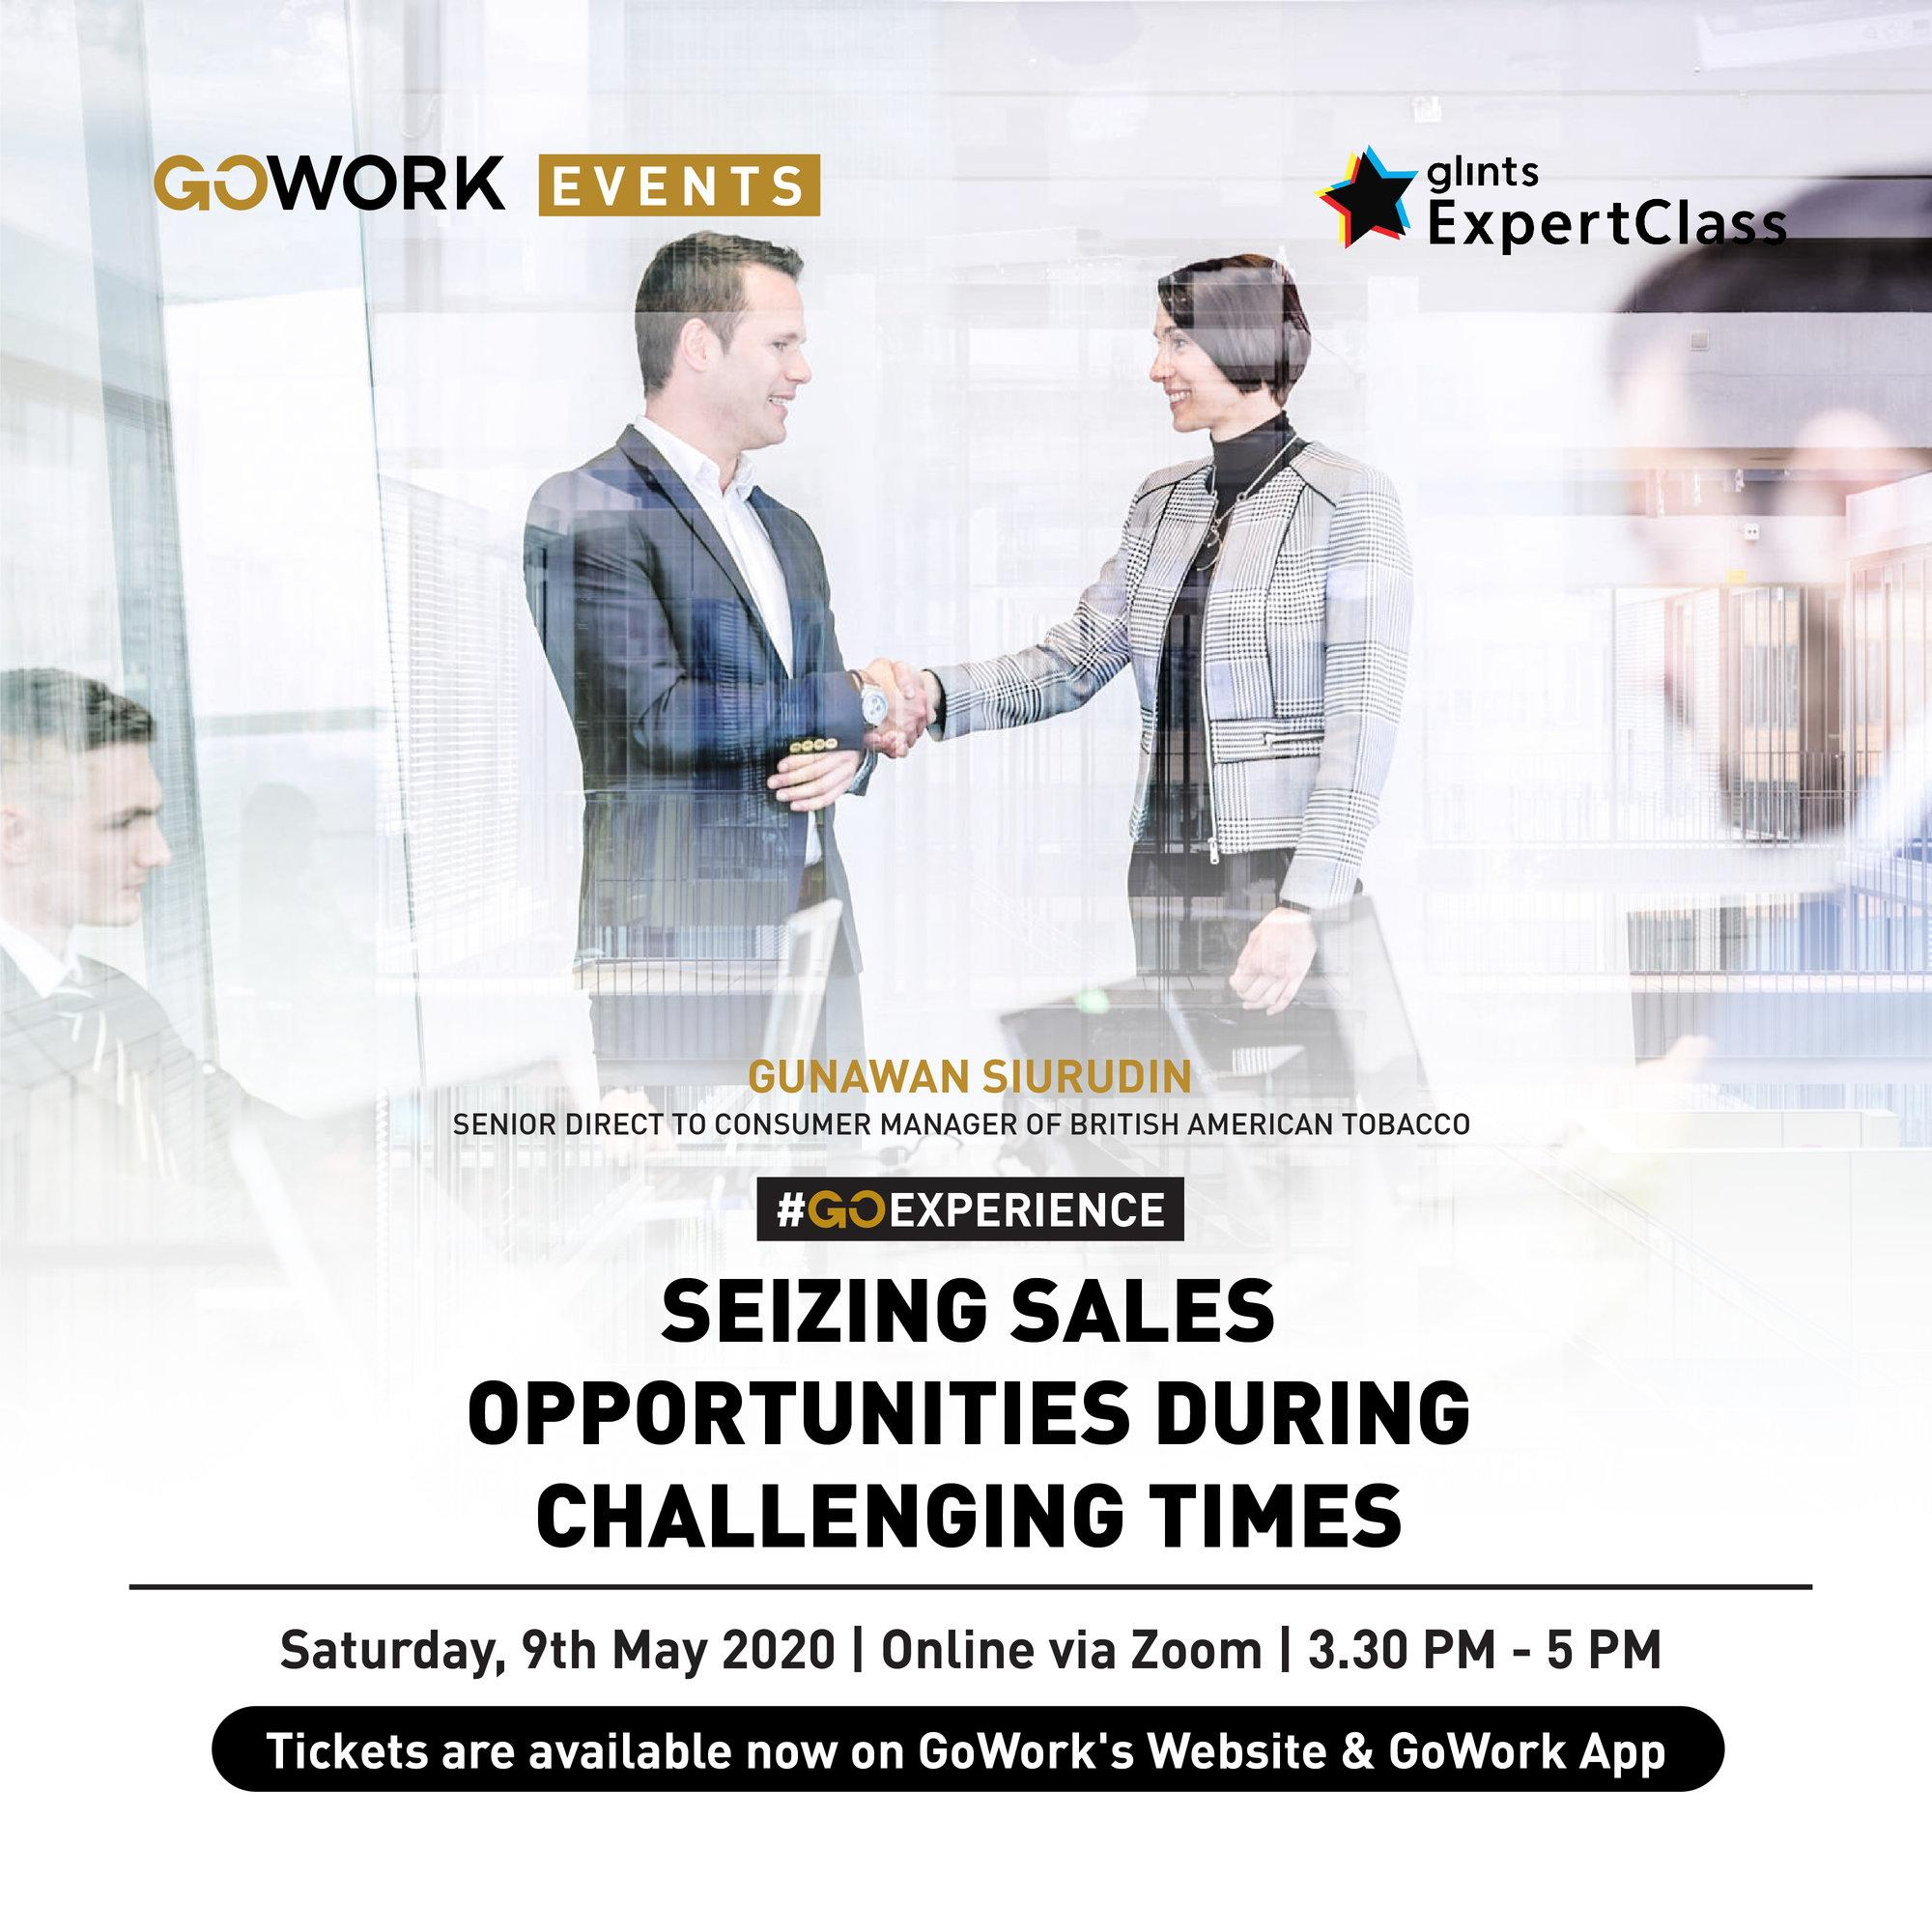 Seizing Sales Opportunities During Challenging Times